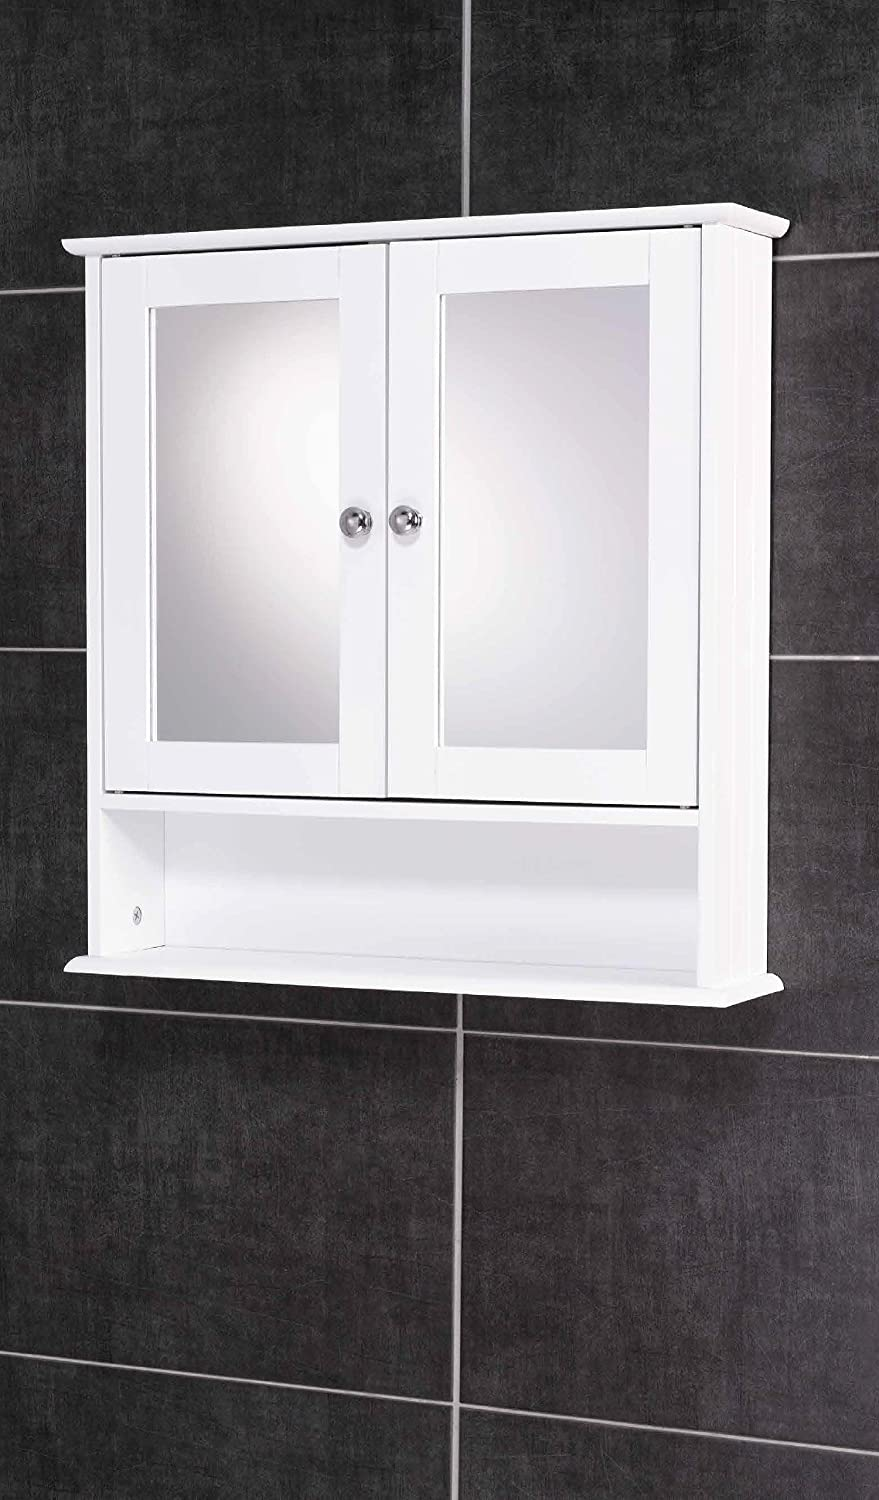 new england style bathroom cabinets. new england white bathroom cabinet with mirror and shelf unit: amazon.co.uk: kitchen \u0026 home style cabinets i